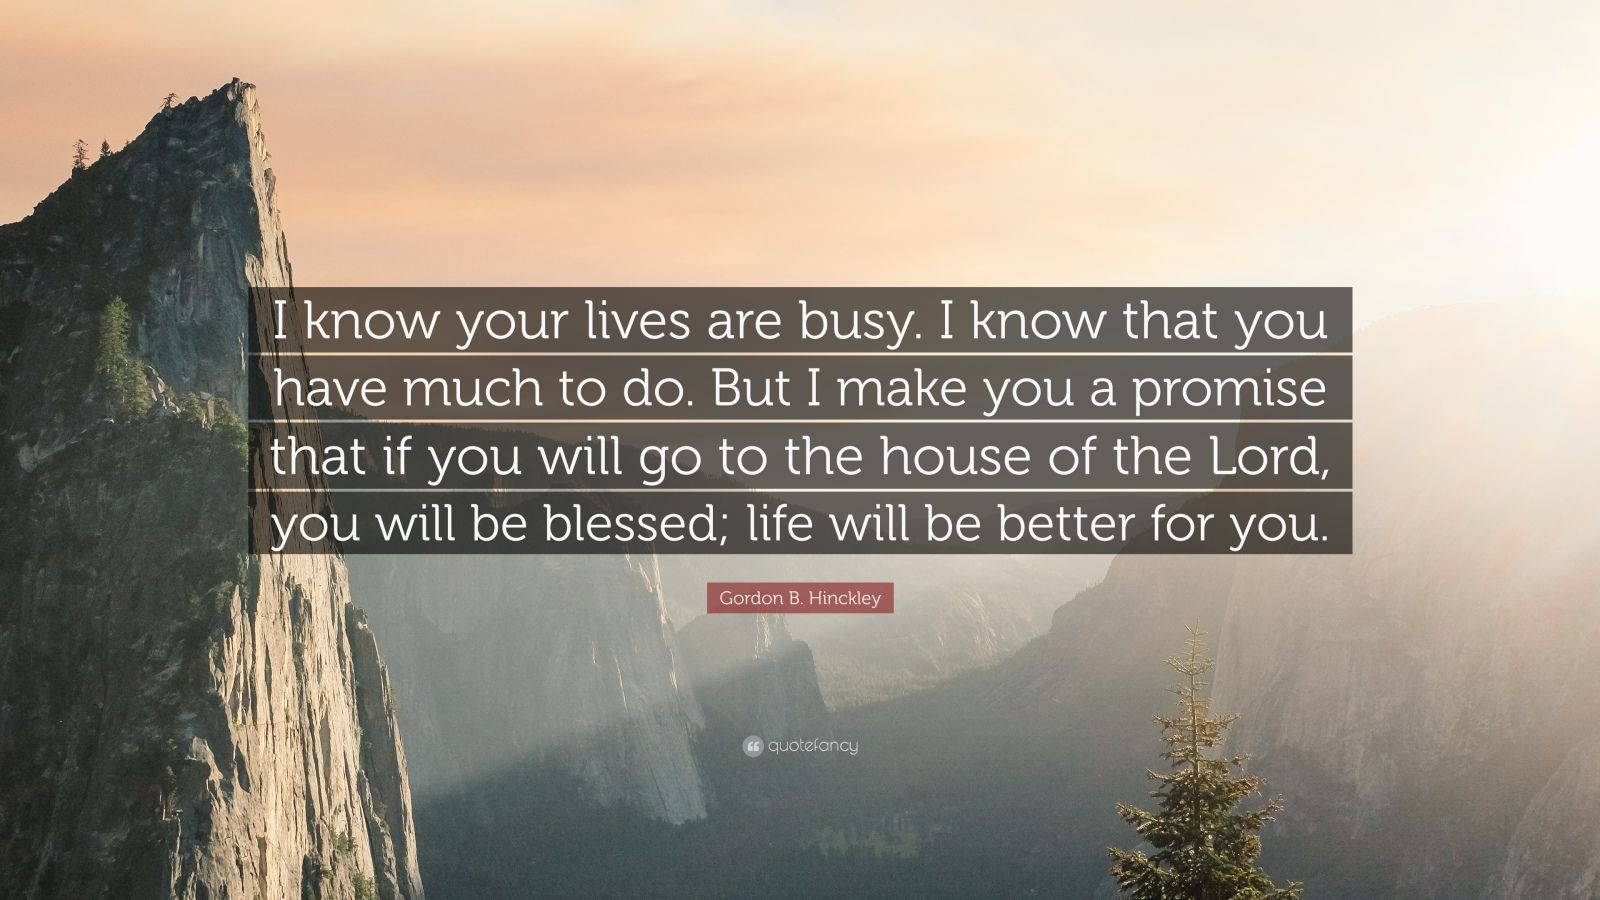 "Gordon B. Hinckley Quote: ""I know your lives are busy. I know that you have much to do. But I make you a promise that if you will go to the house of the Lord, you will be blessed; life will be better for you."""